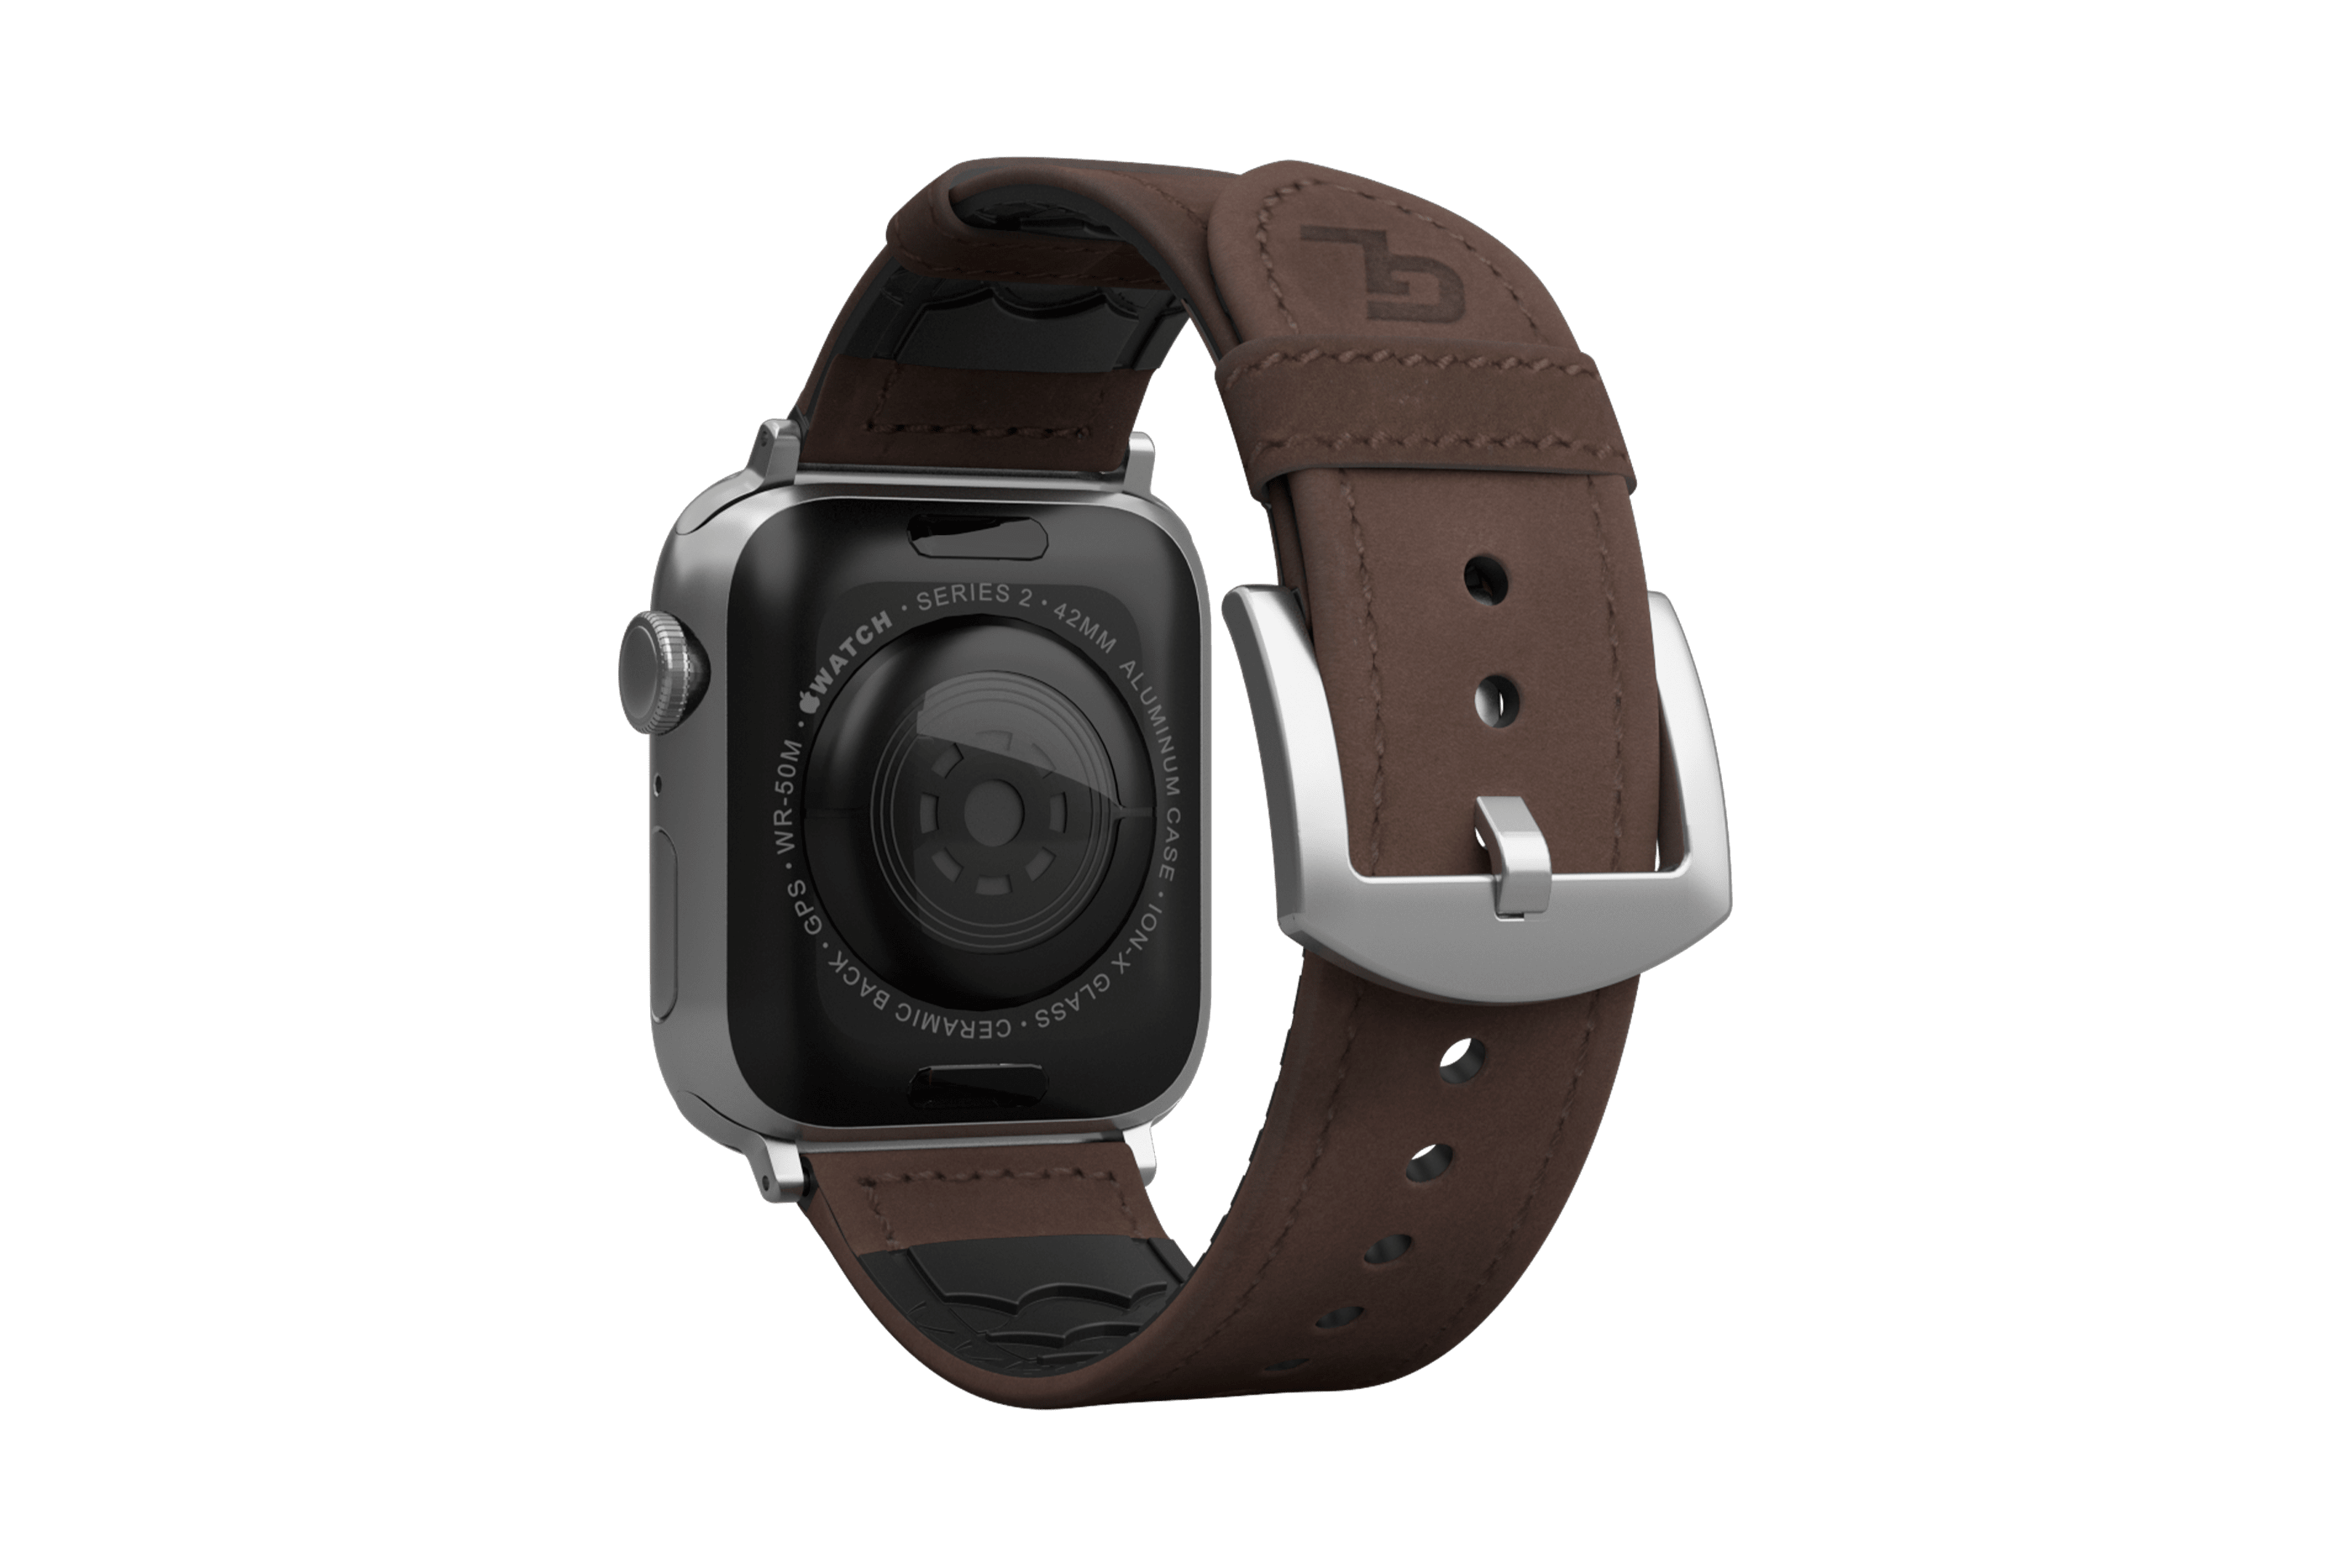 Vulcan Ascent Leather apple watch band with  silver hardware viewed from top down